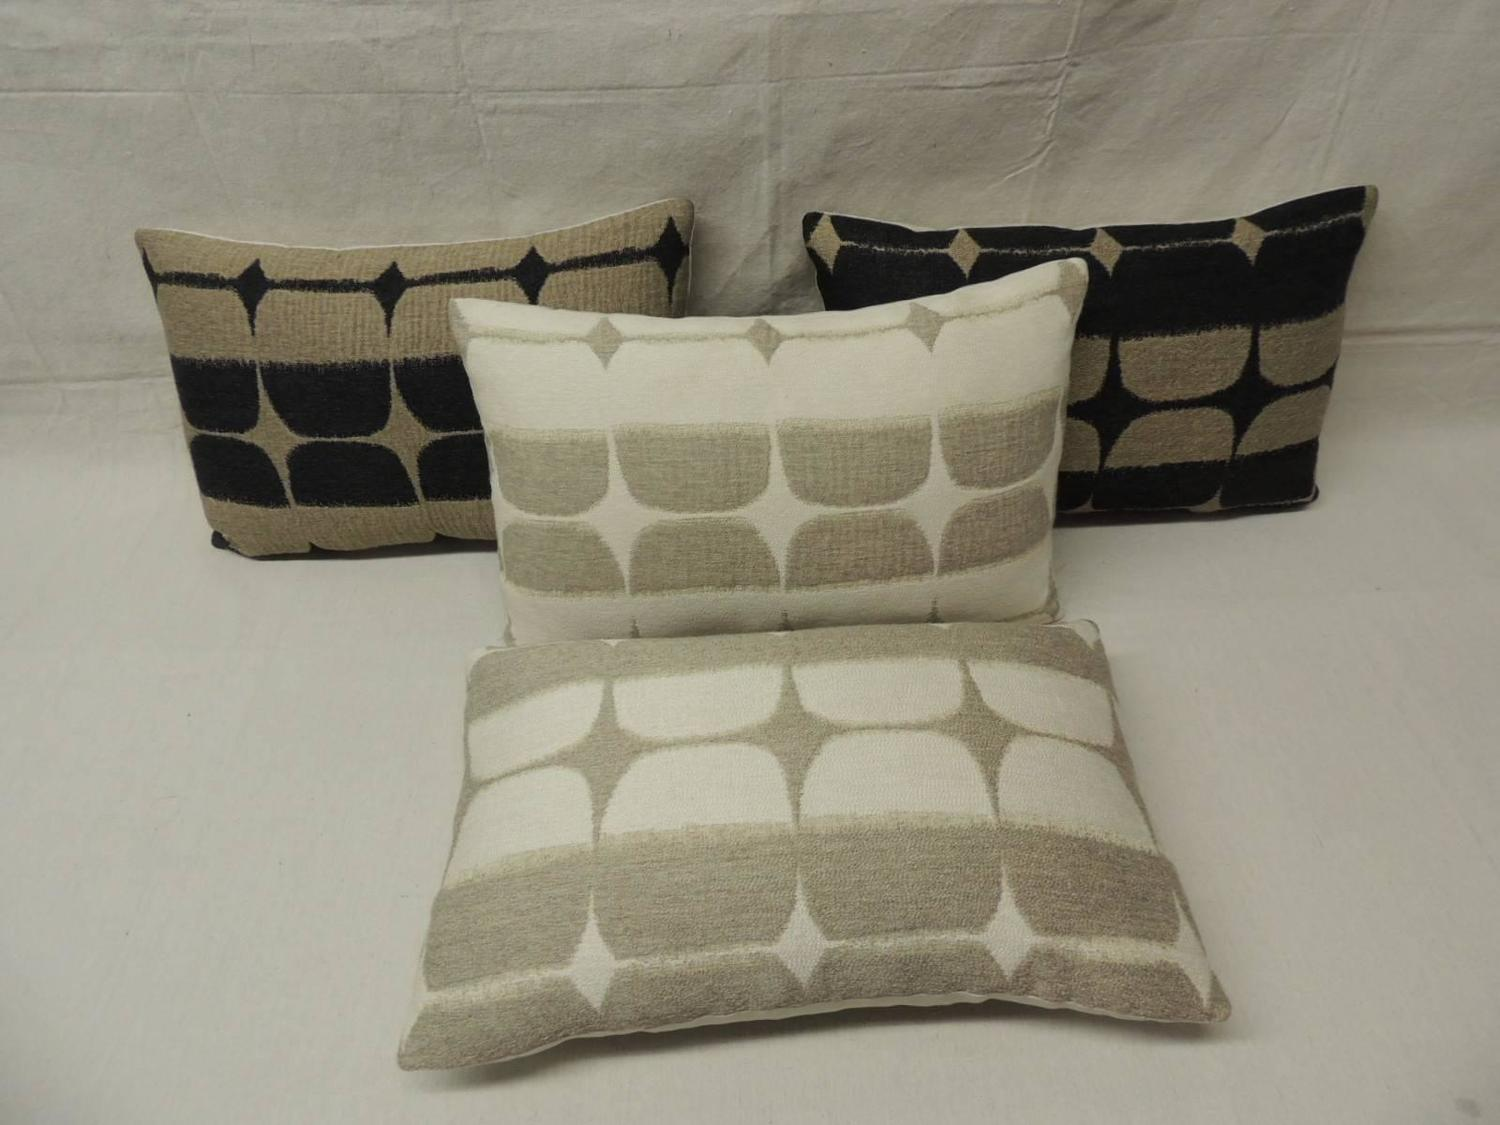 Mid-Century Modern Lumbar Pillows For Sale at 1stdibs